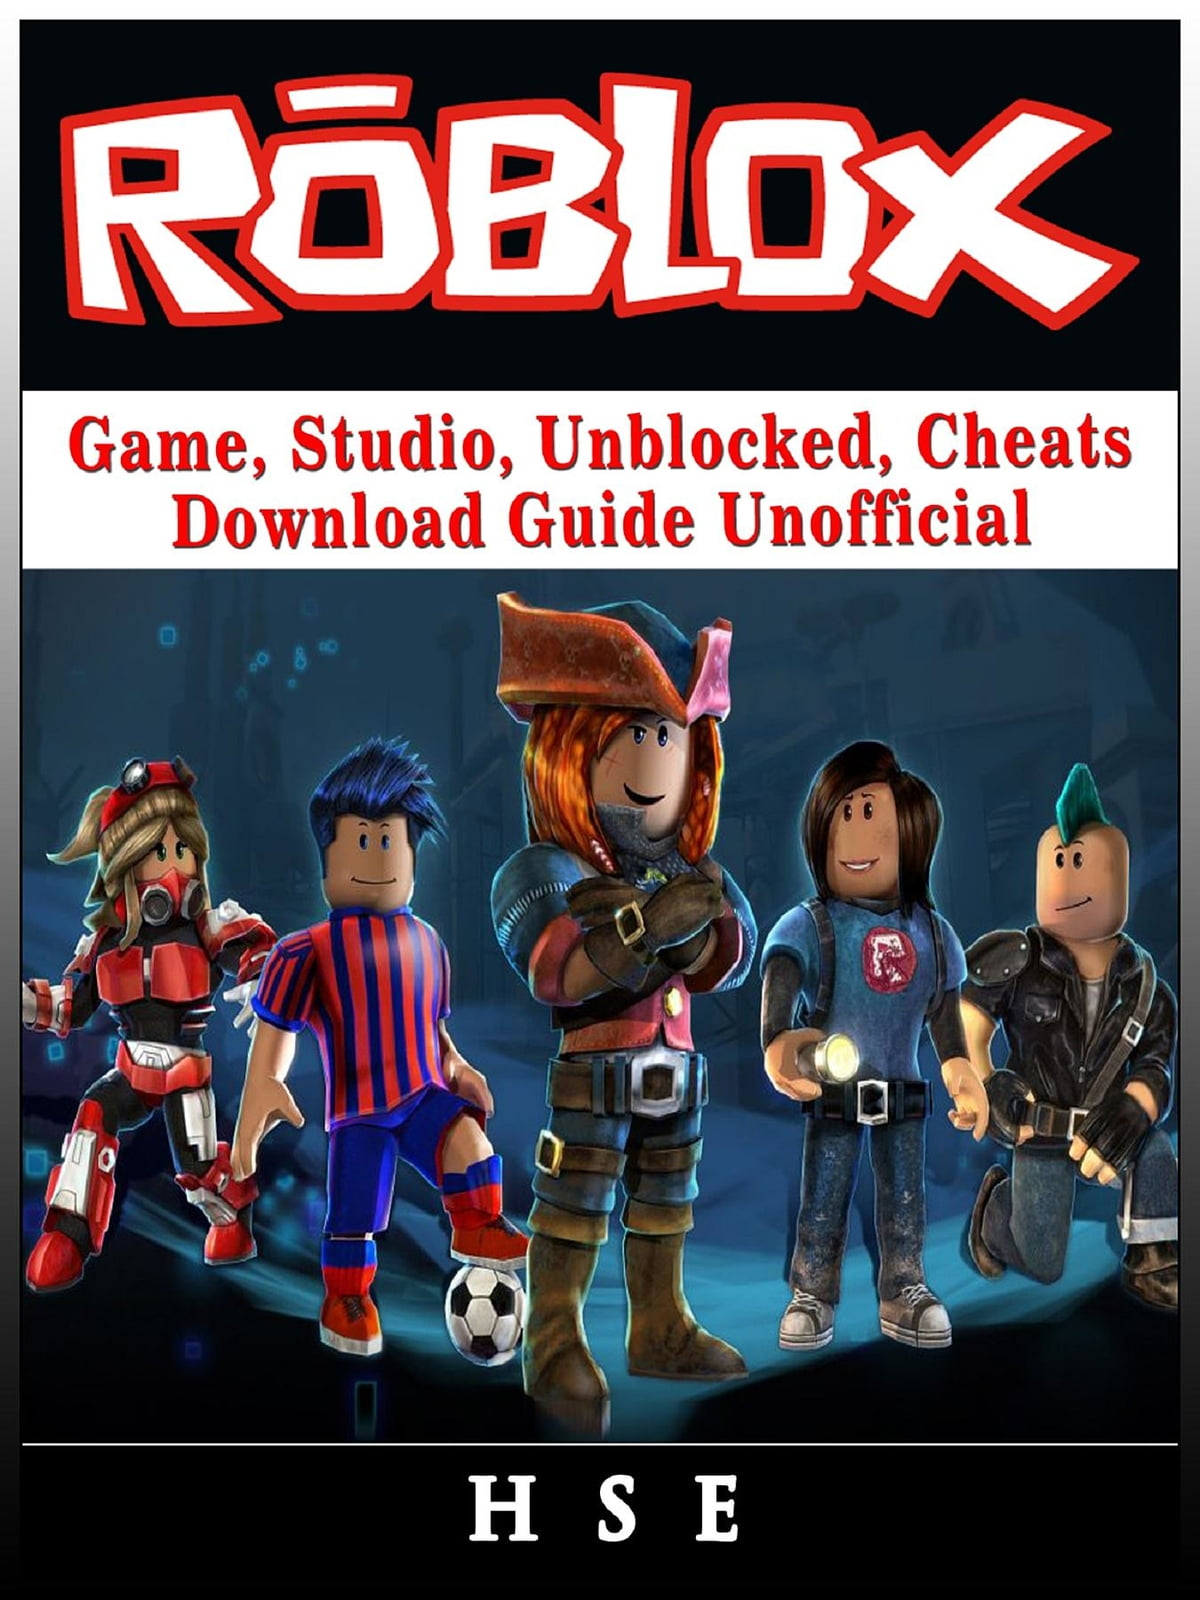 Roblox Windows Game, Studio, Unblocked, Cheats, Download Guide Unofficial  ebook by HSE - Rakuten Kobo